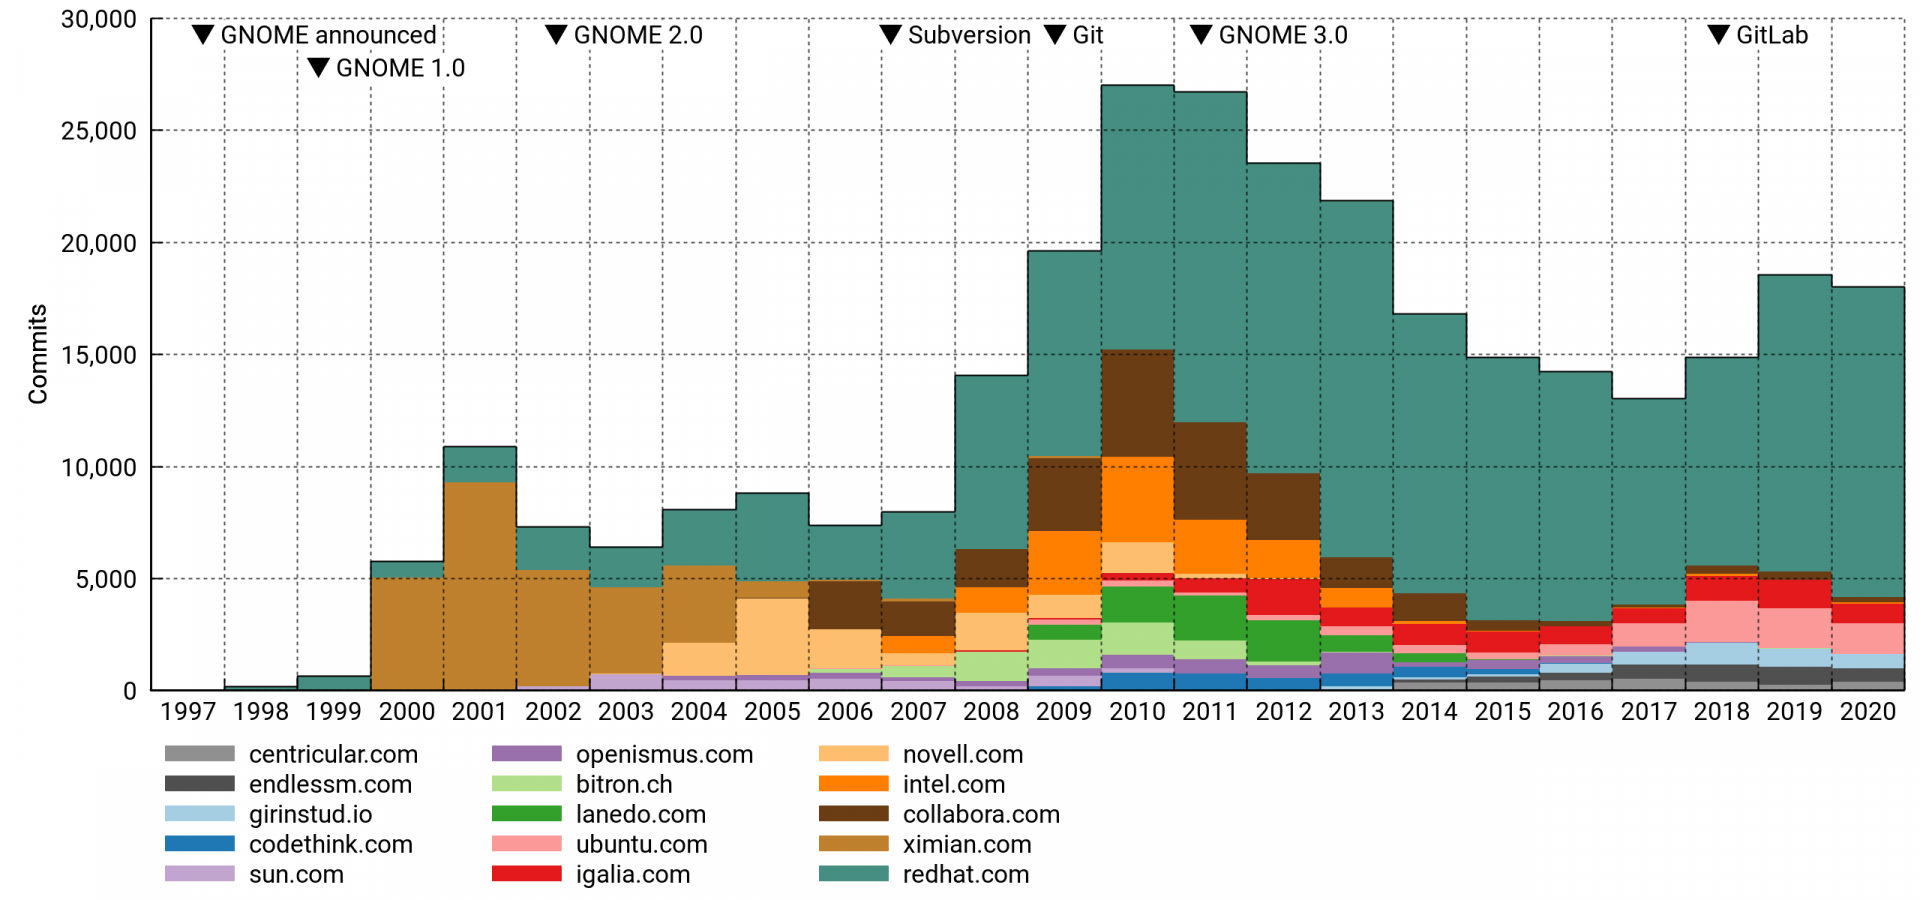 Number of GNOME commits per year, top-15 domain cohorts